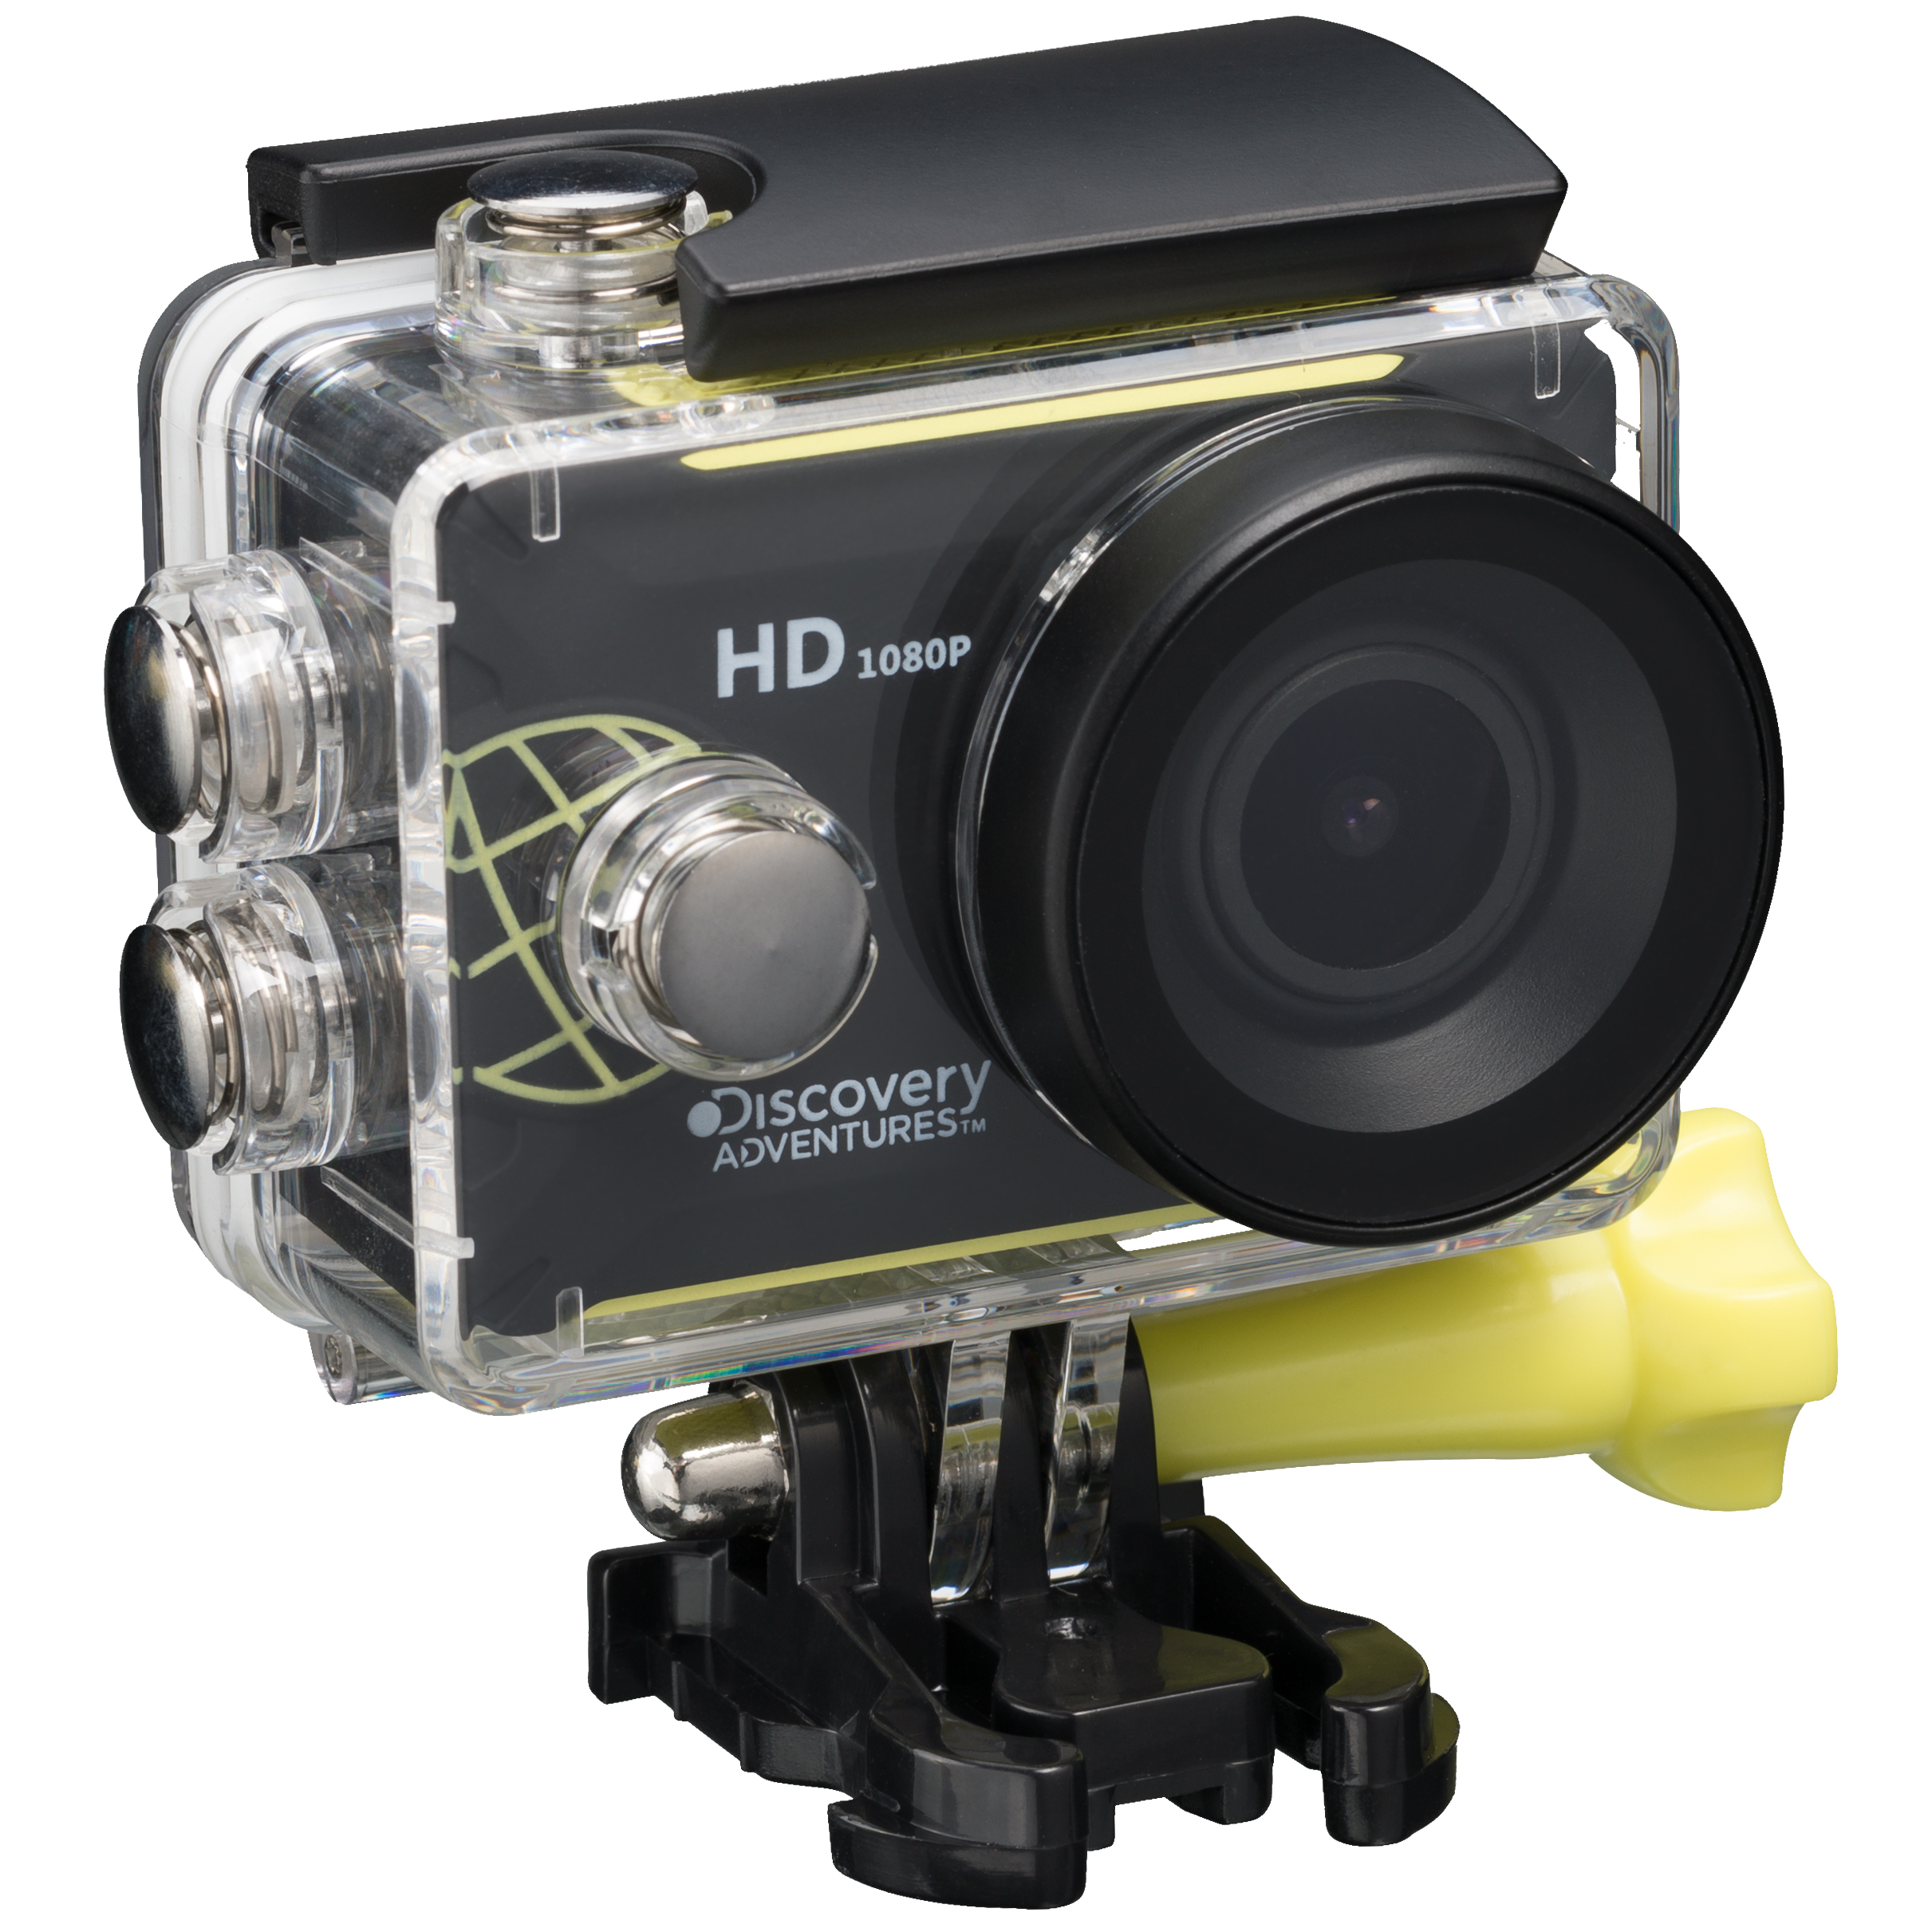 discovery adventures full hd 1080p action camera scout. Black Bedroom Furniture Sets. Home Design Ideas